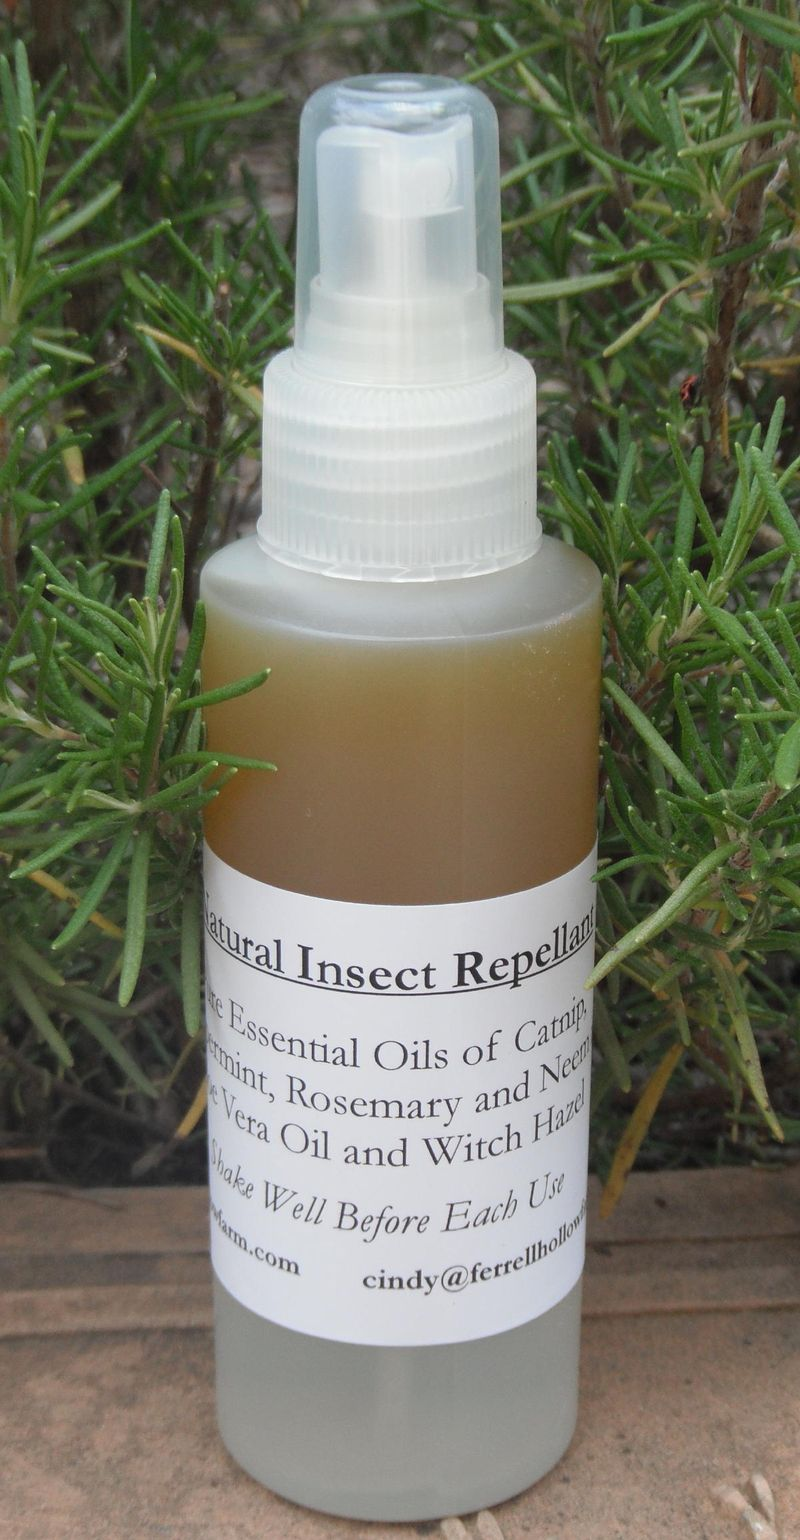 Insect Repellent 6-26-10